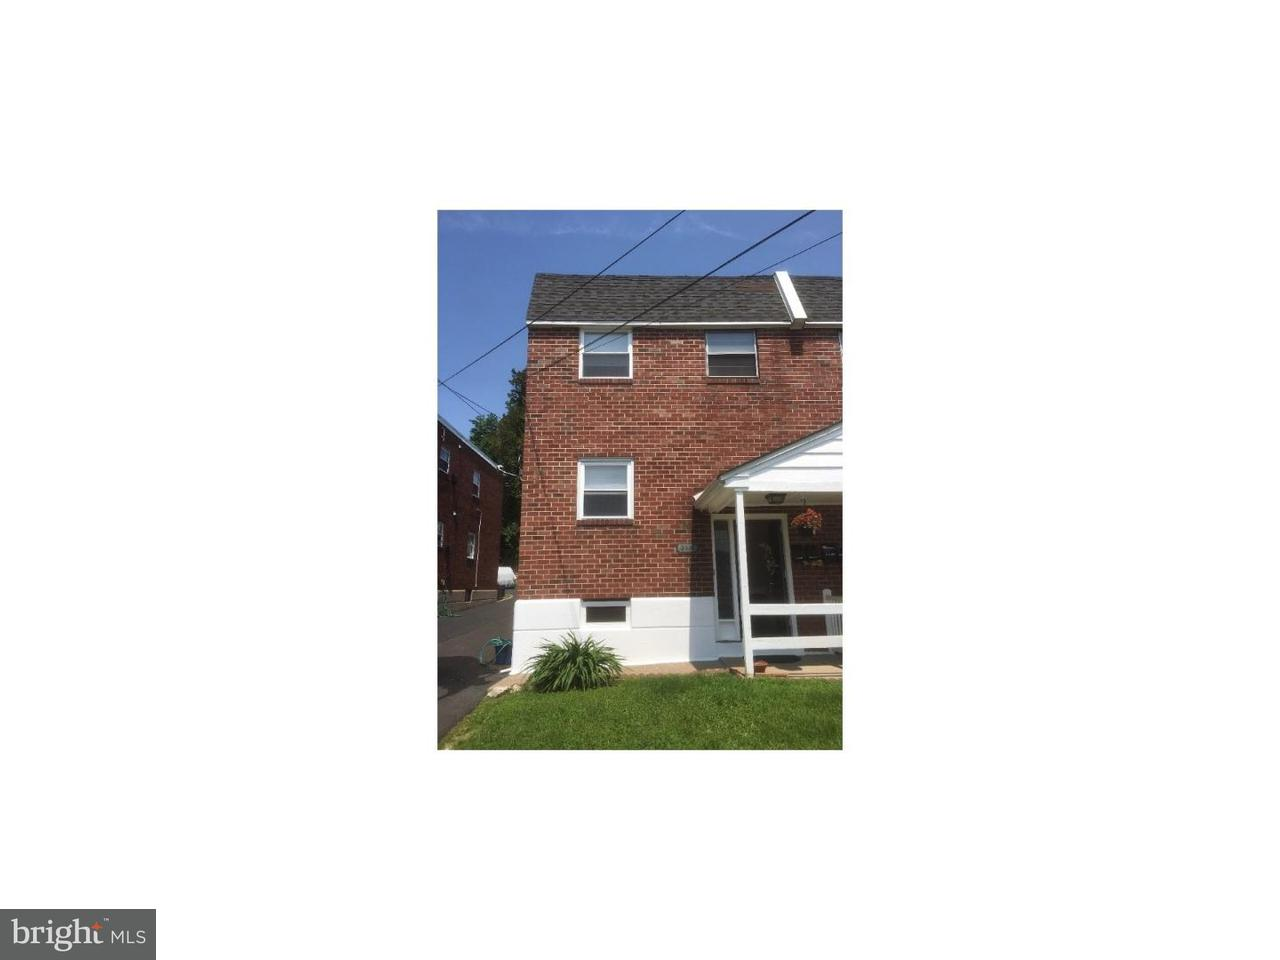 3331 Mary Street Drexel Hill, PA 19026